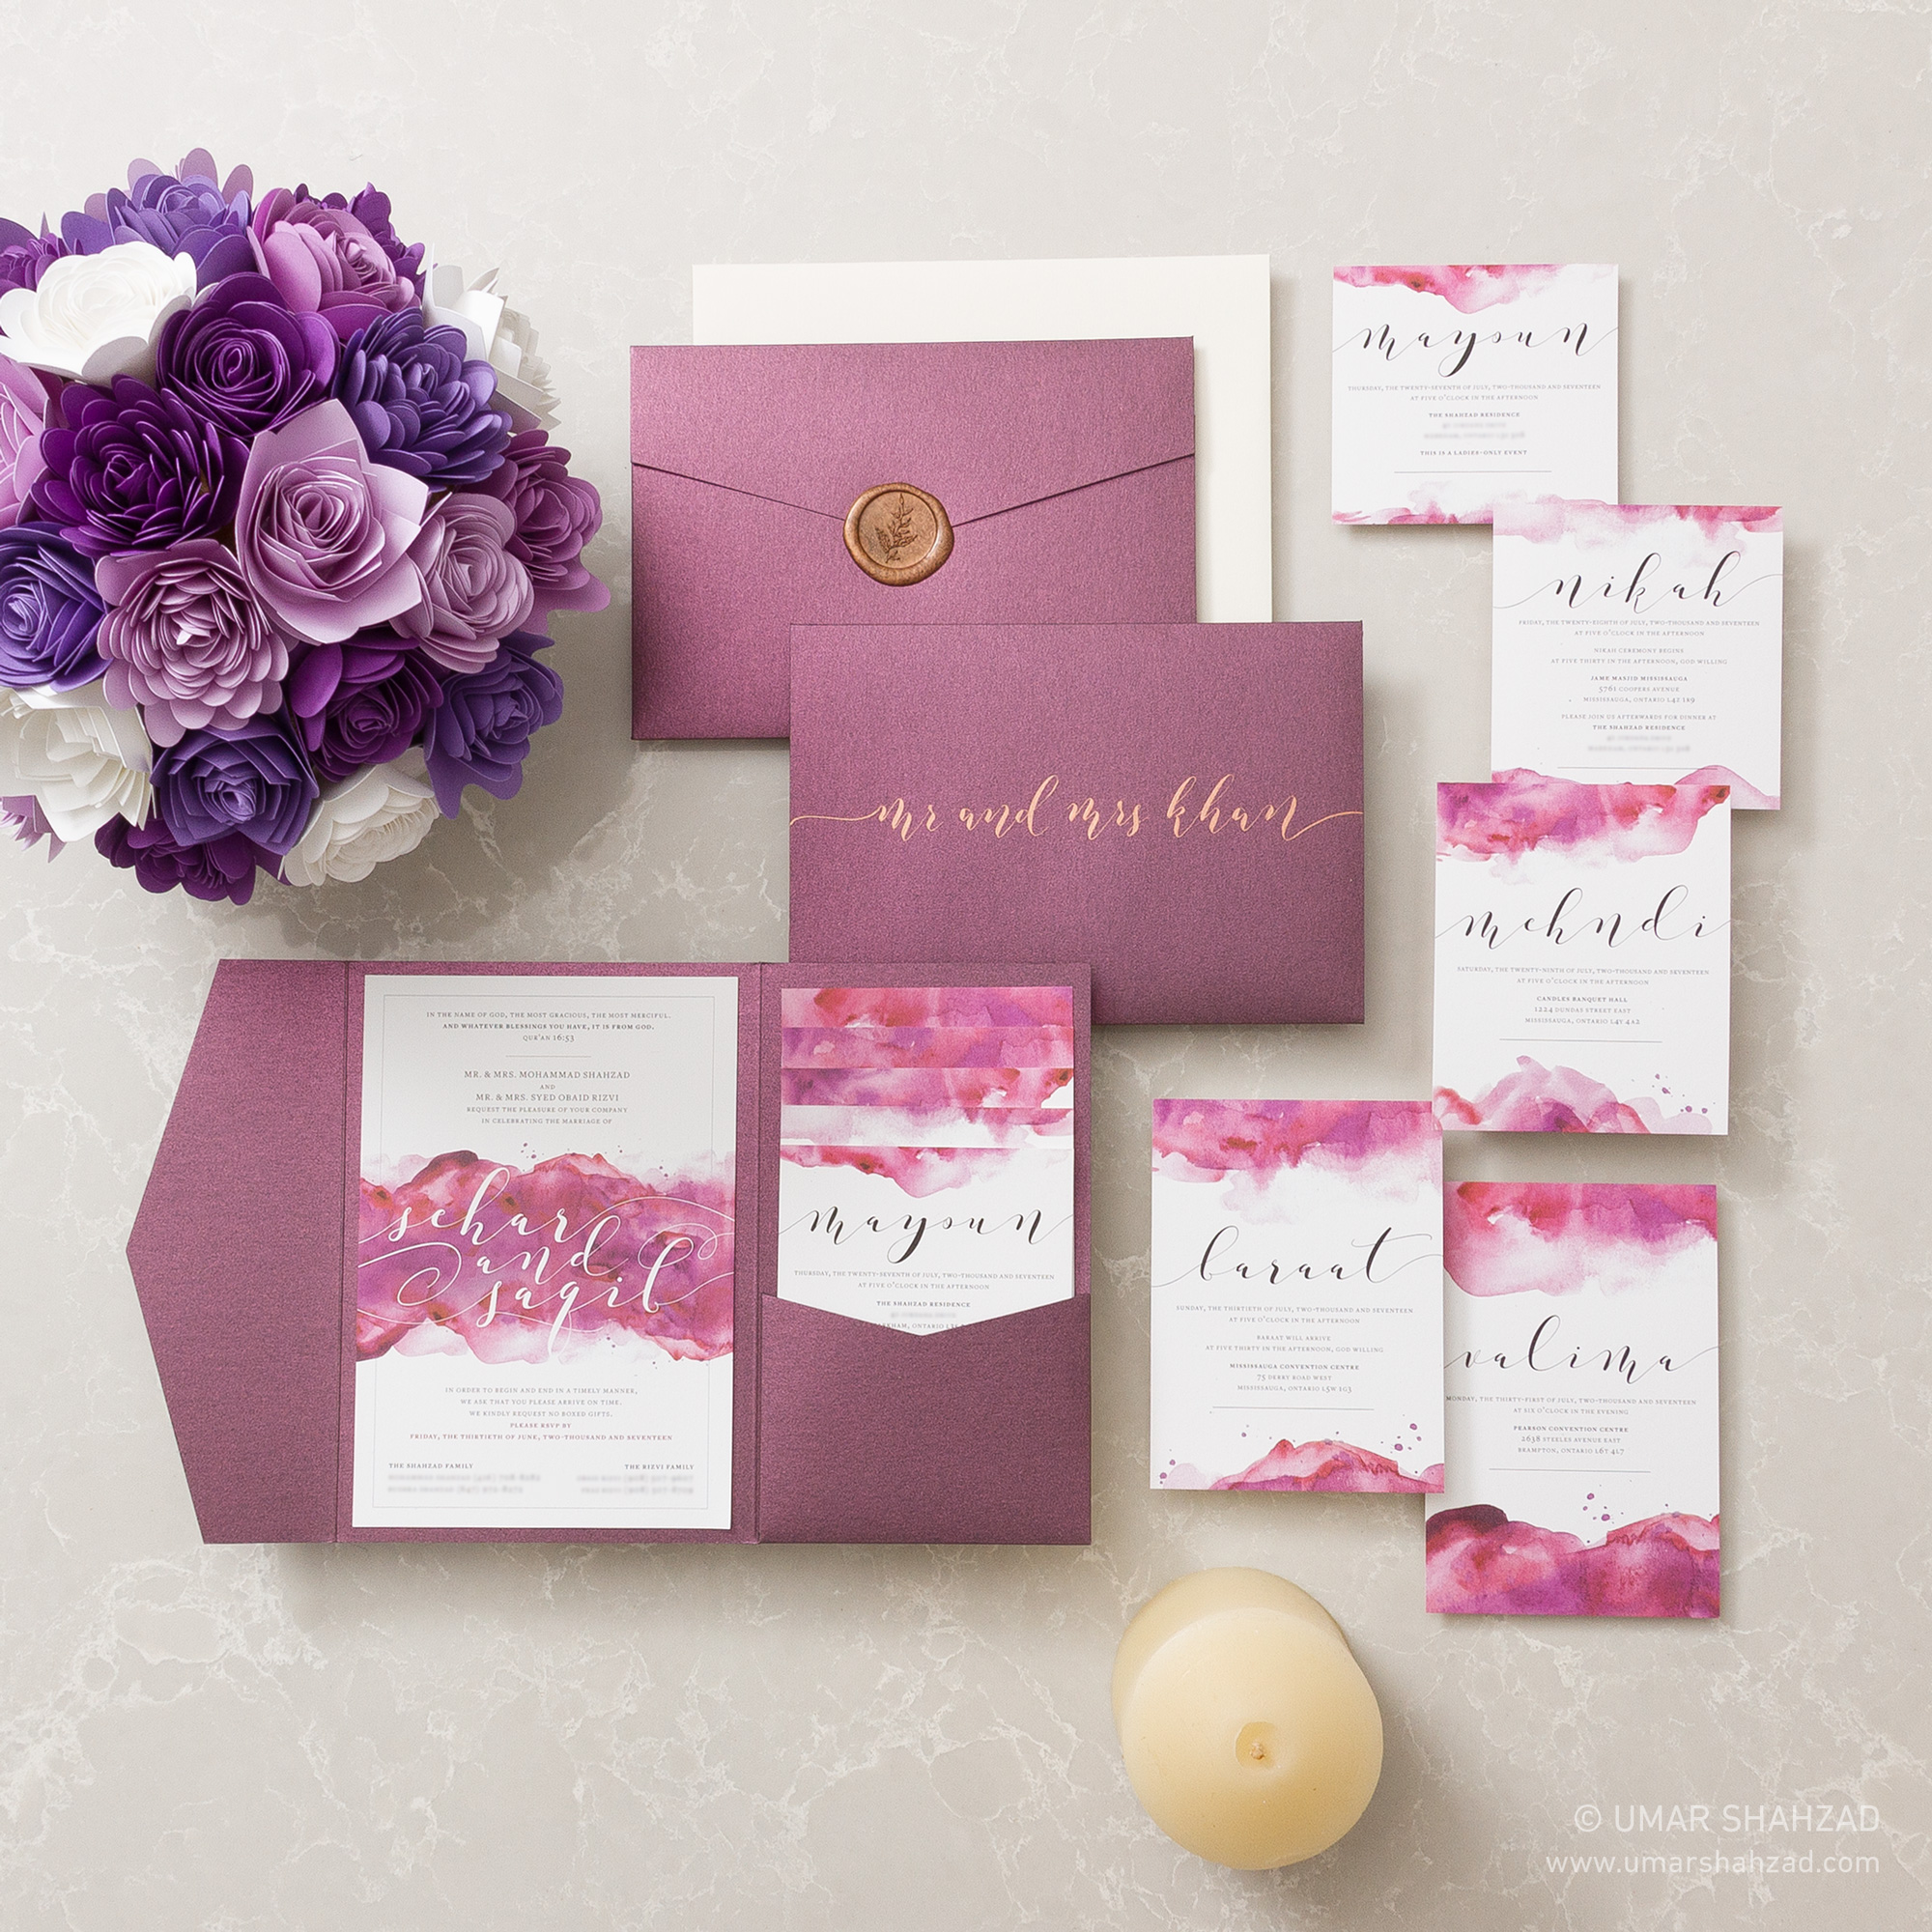 Umar_Shahzad_Wedding_Invitation_01.jpg